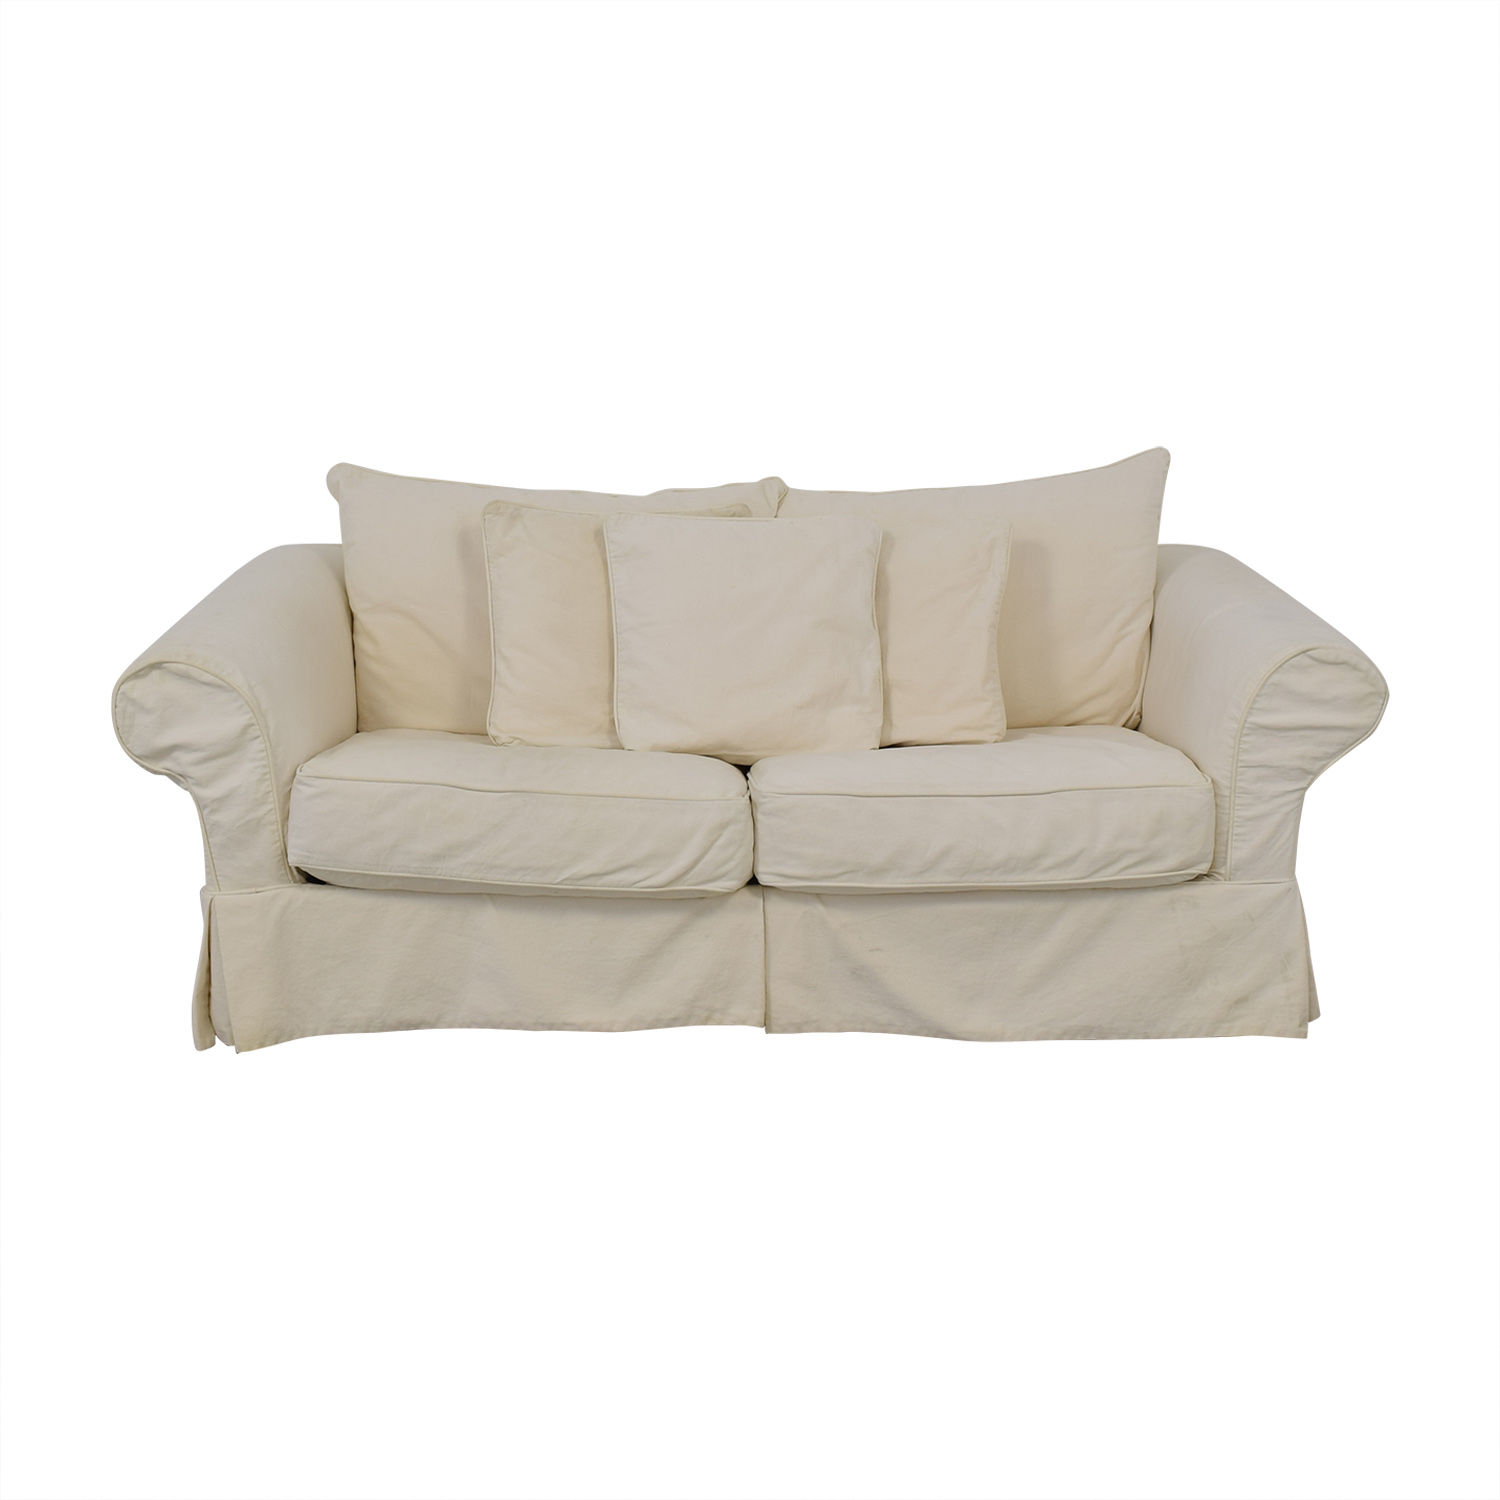 Slipcovered Sleeper Sofa Loveseats